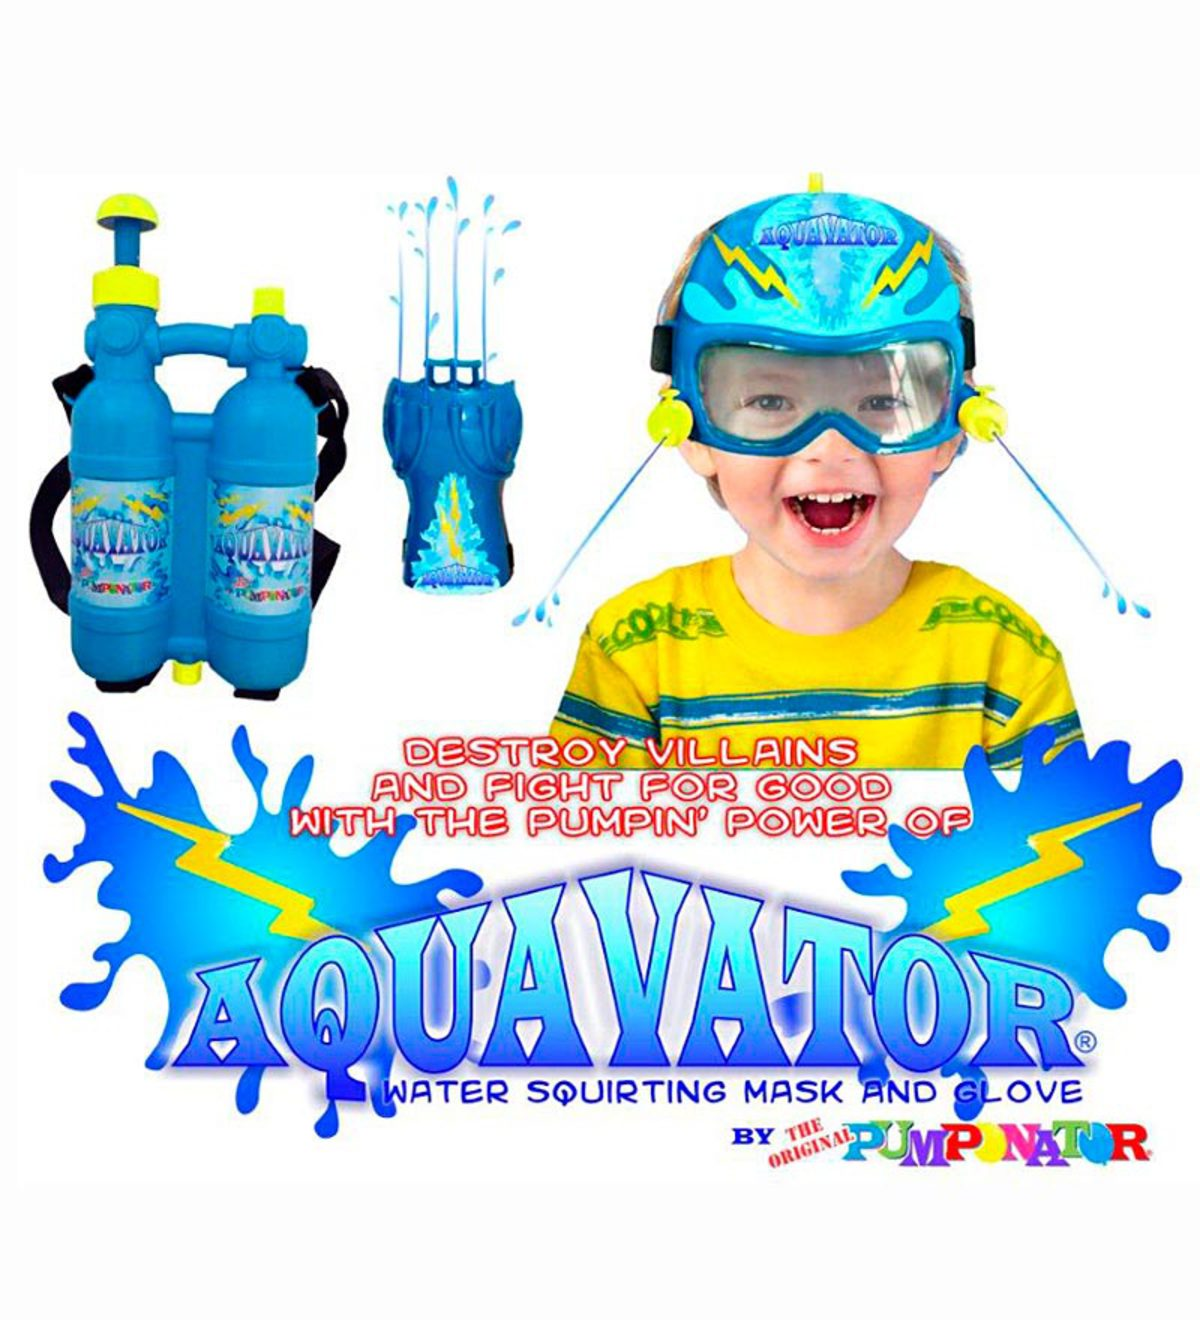 Aquavator® Water Squirting Mask and Glove